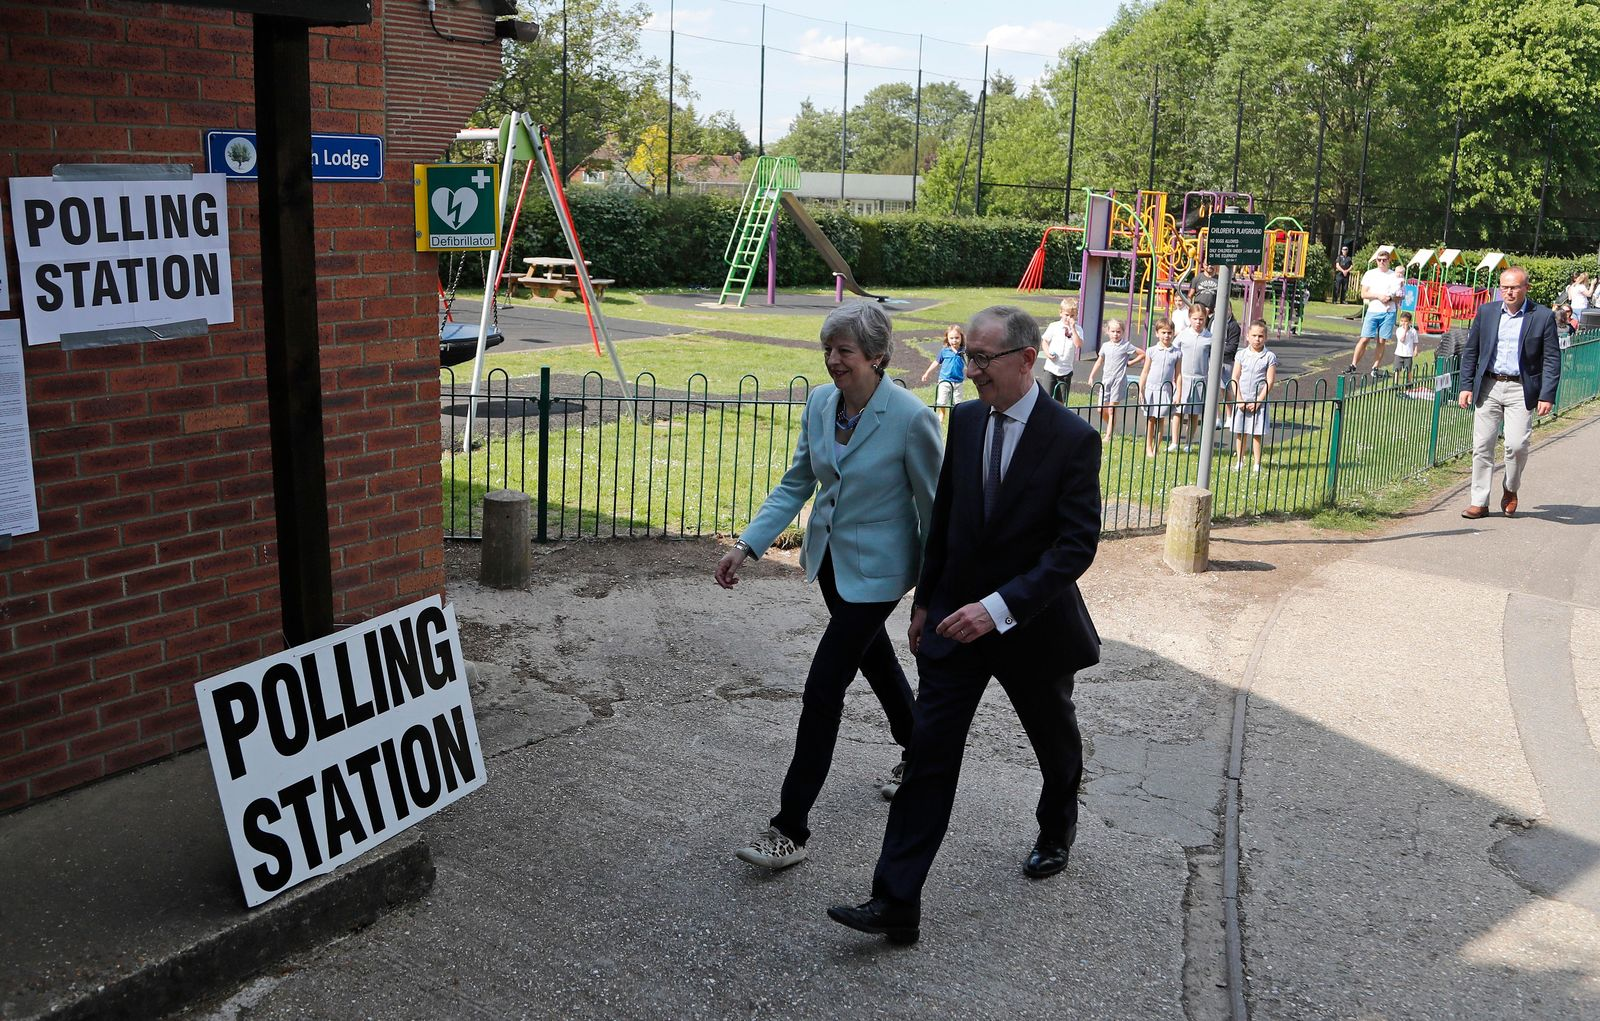 Britain's Prime Minister Theresa May and her husband Philip arrive at a polling station to vote in the European Elections in Sonning, England, Thursday, May 23, 2019.(AP Photo/Frank Augstein)